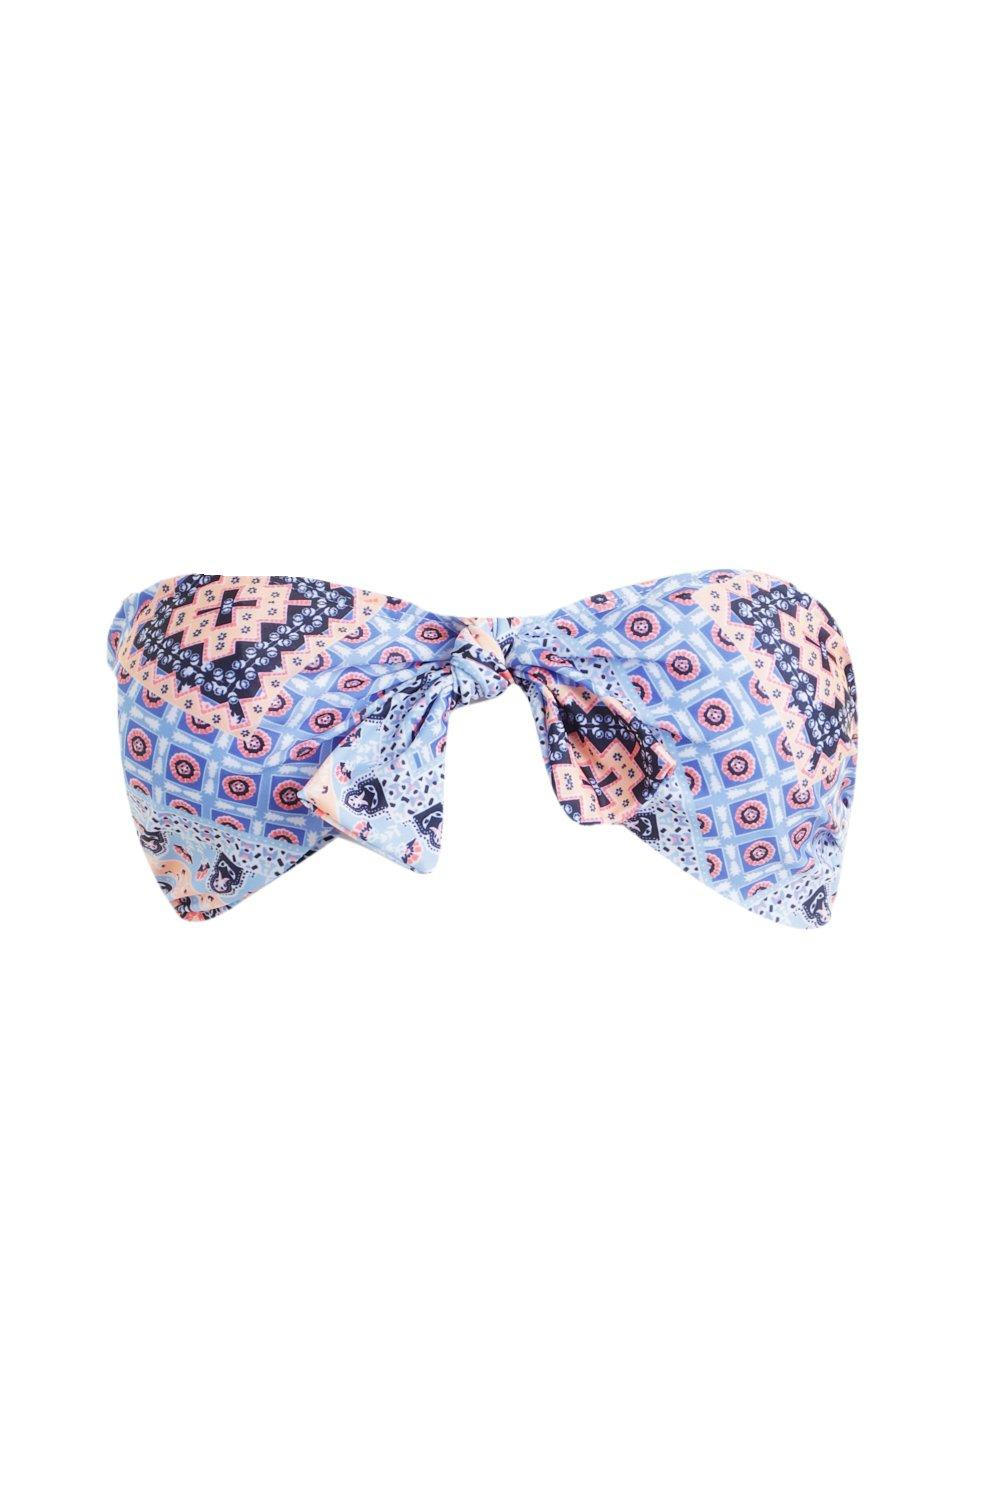 Knotted Mix Tile Bandeau Top Print Match blue amp; wUqP7Uvz